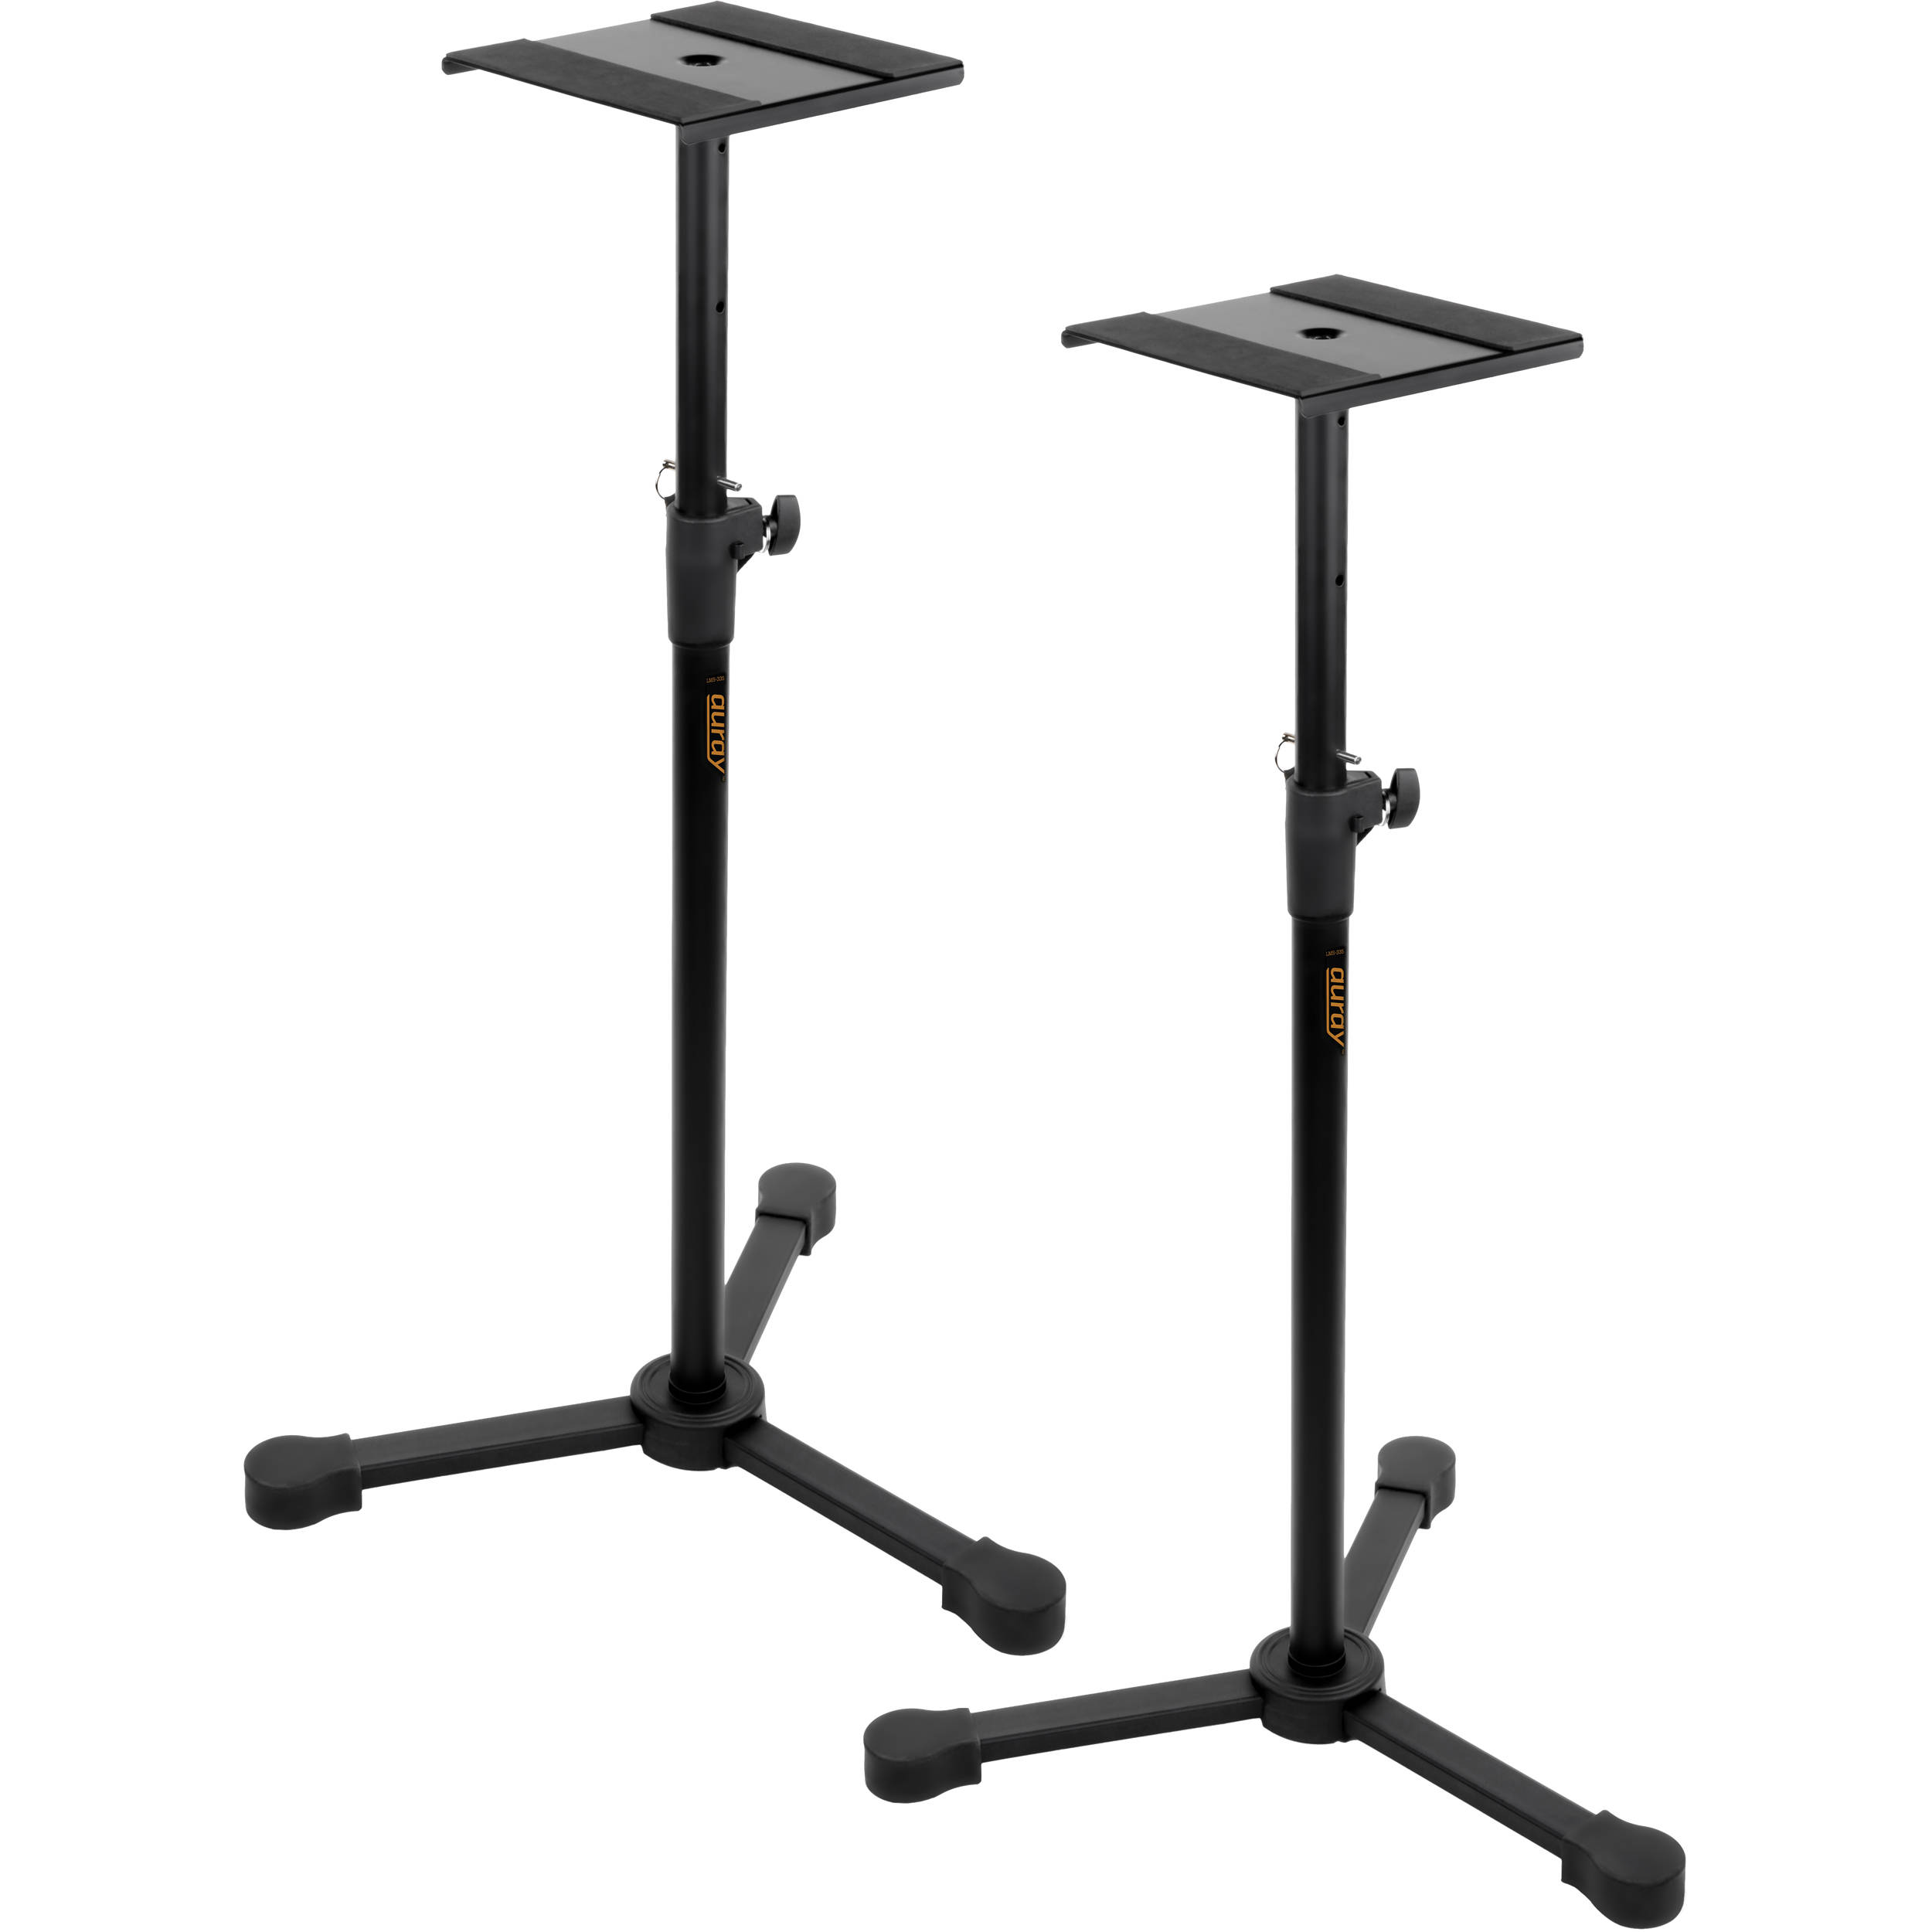 Auray lms 355 studio monitor stands pair lms 335 b h photo for Stand 2 b